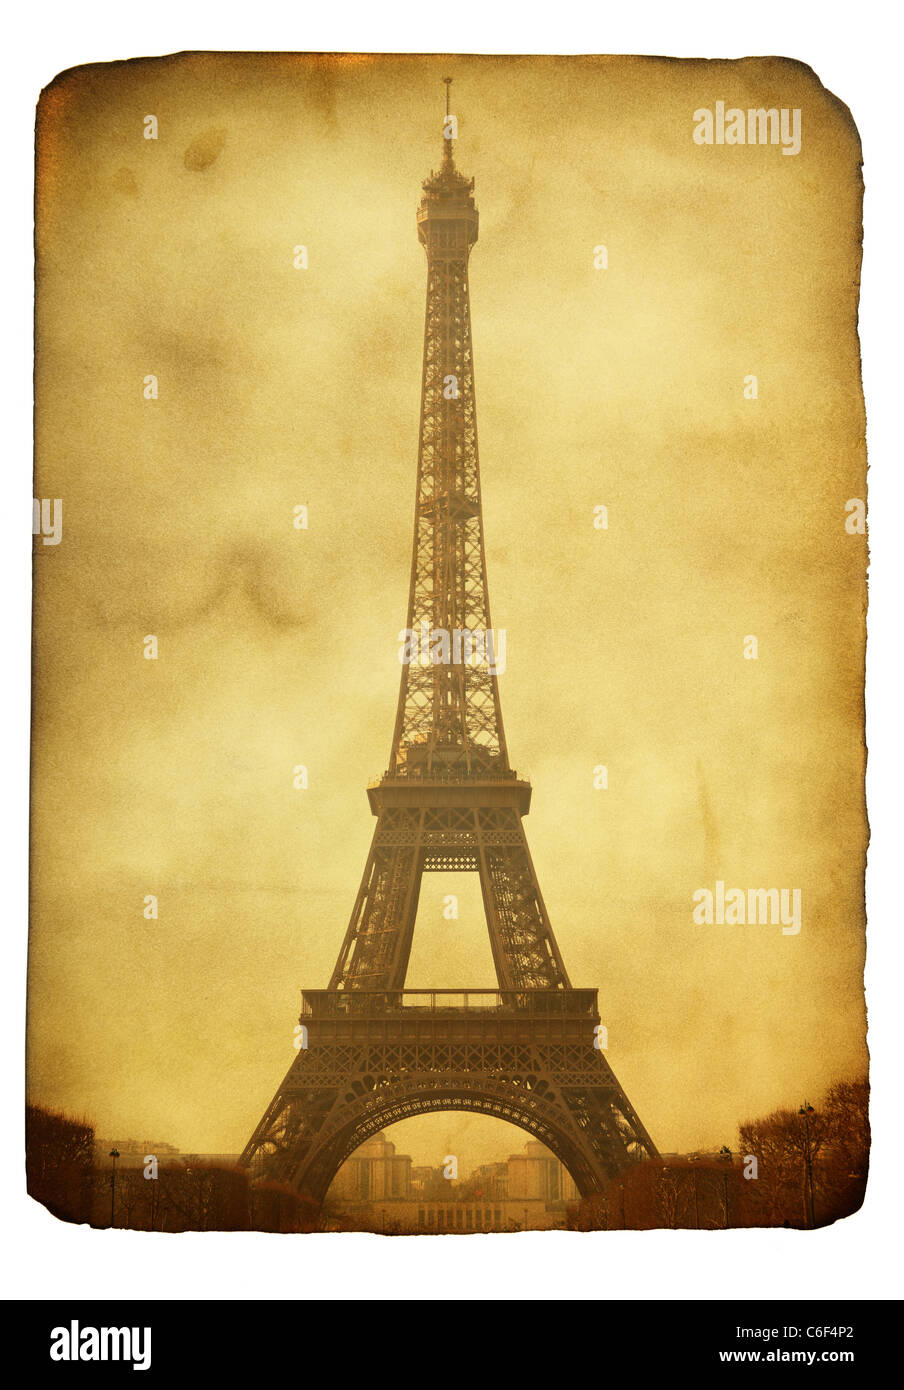 Vntage postcard (imitation) with Eiffel tower isolated over white background - Stock Image